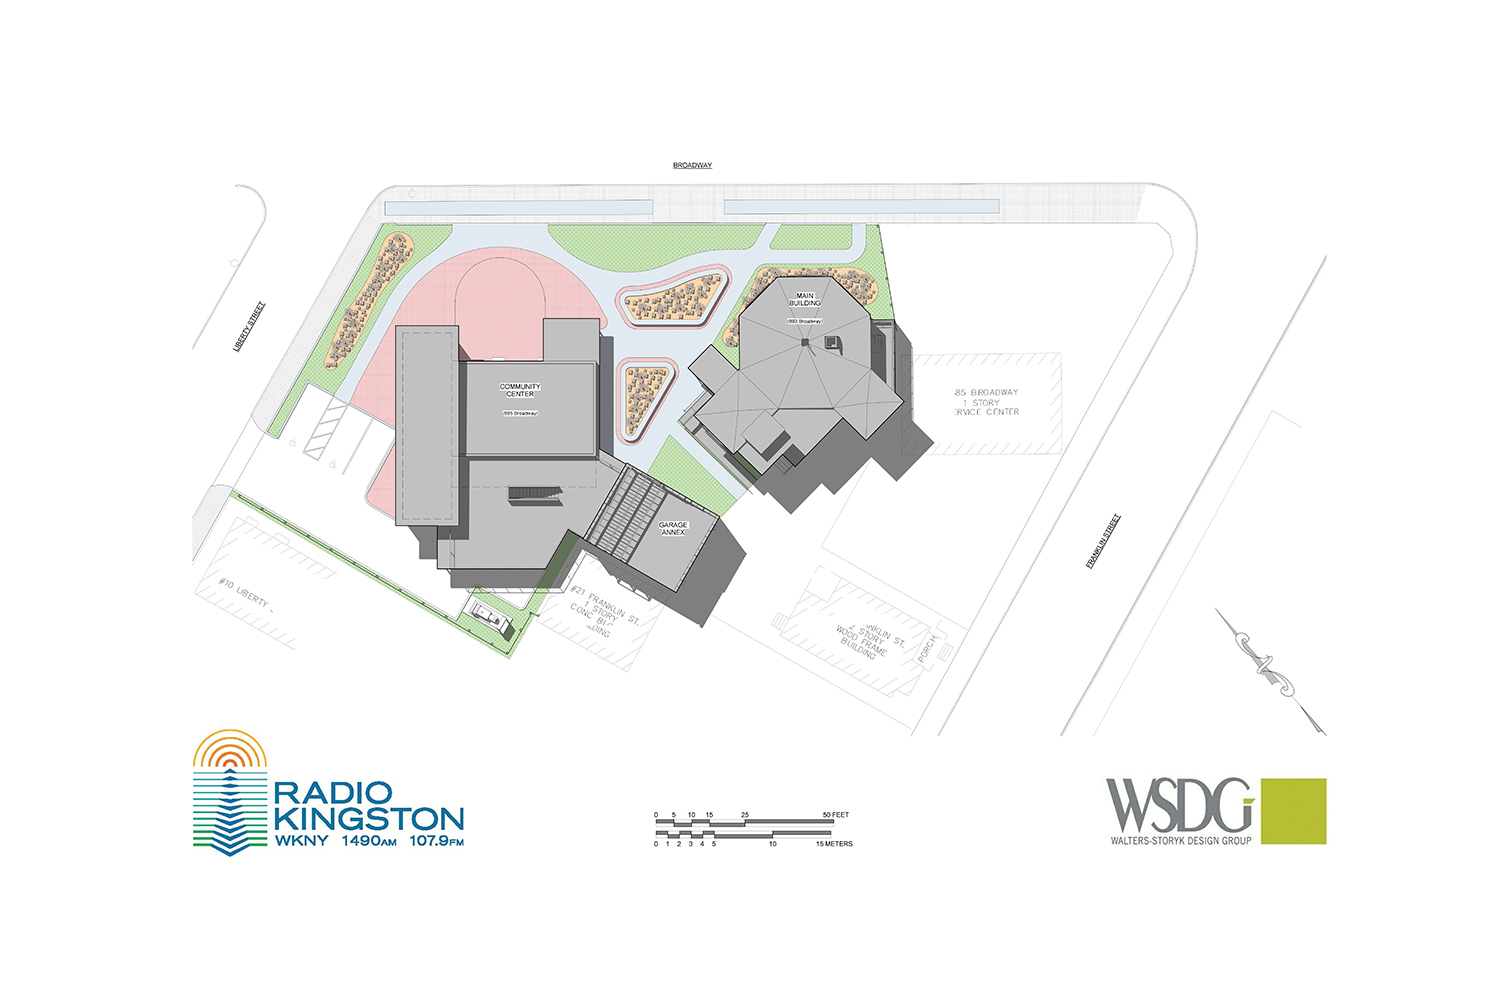 WSDG was retained to design a non-commercial contemporary broadcast/podcast facility for Radio Kingston WKNY new broadcast center. 3D building complex.